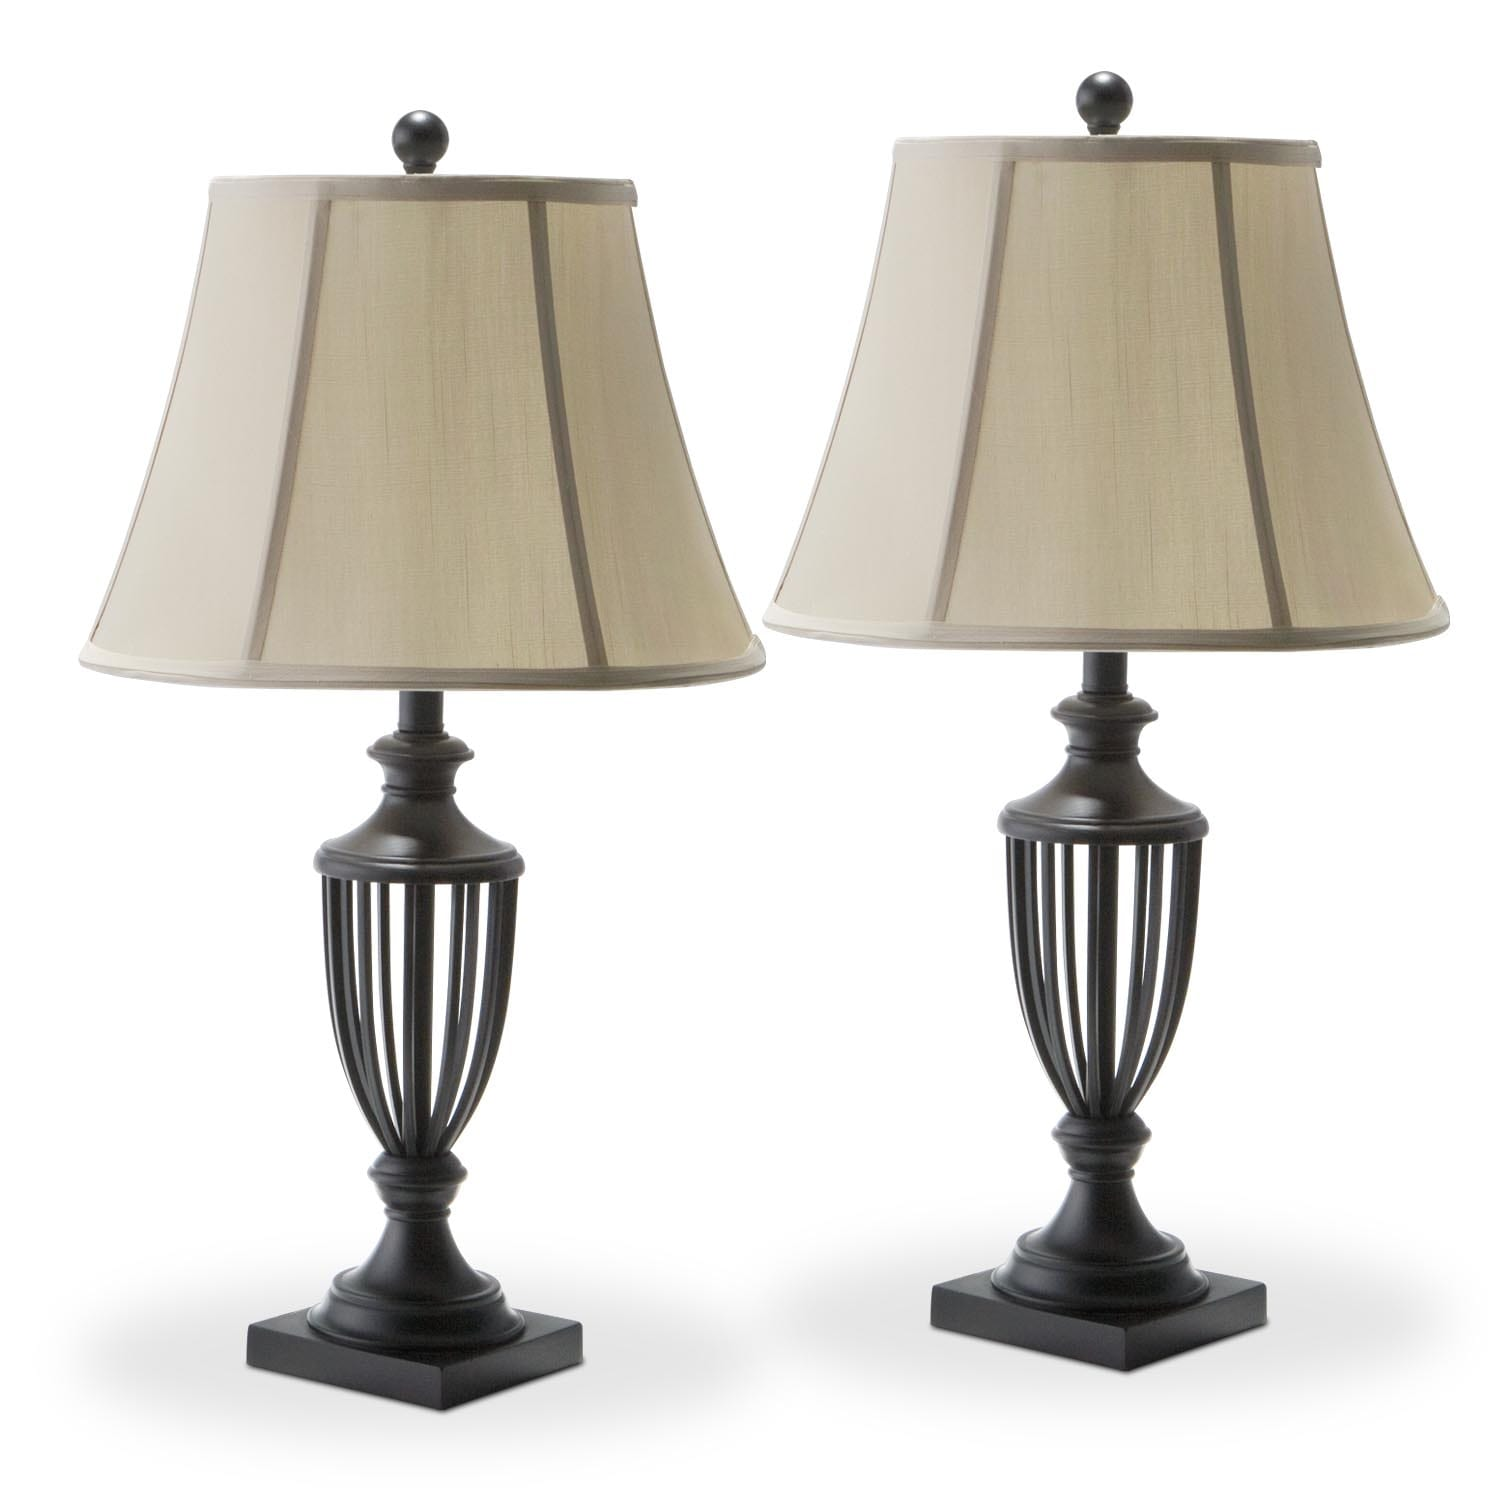 Home Accessories - Mason 2-Pack Table Lamps